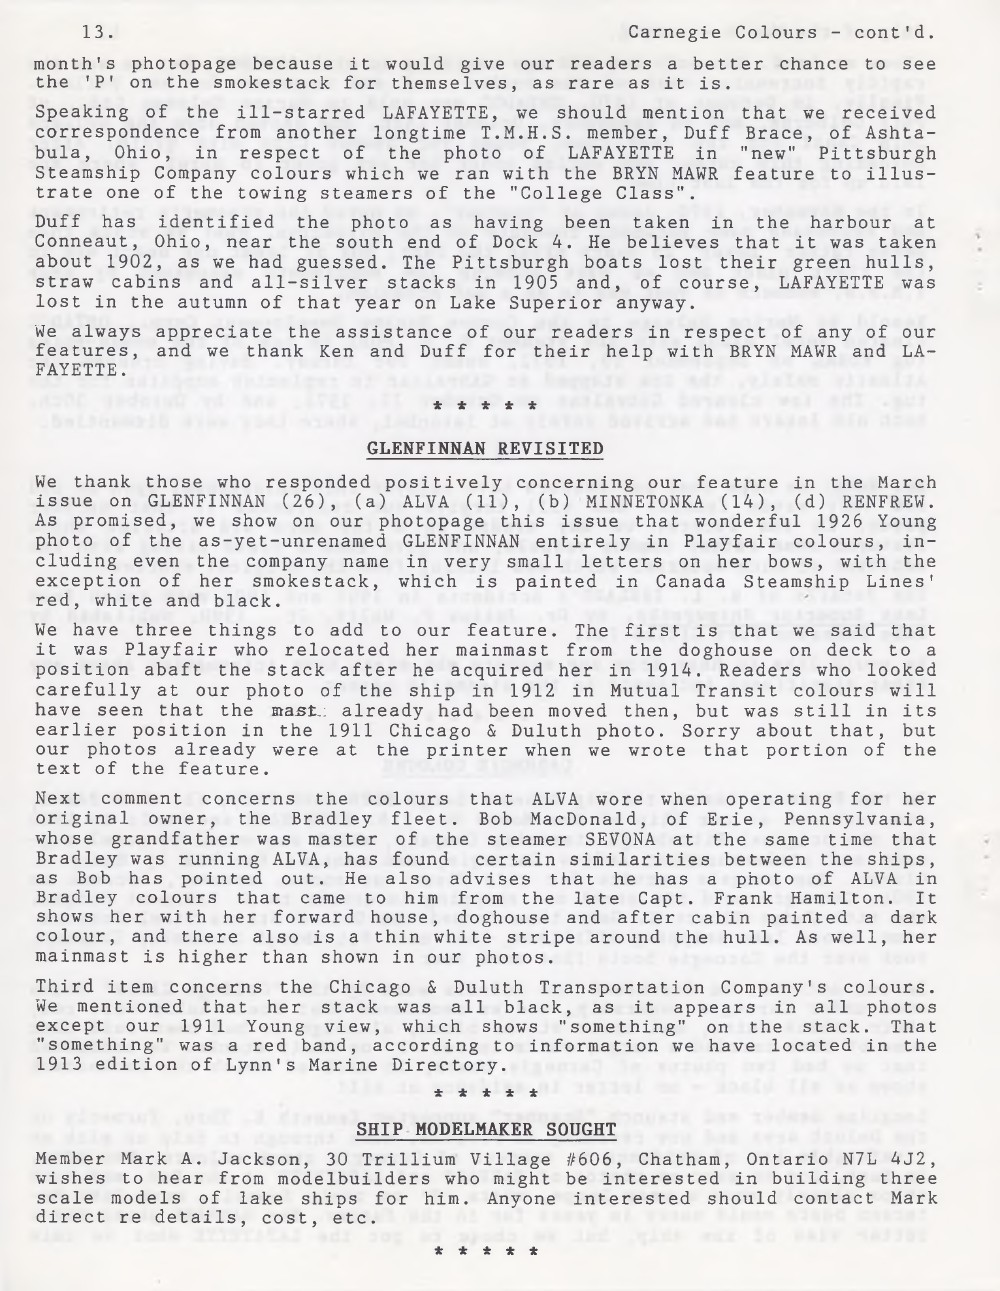 Scanner, v. 27, no. 7 (April 1995)